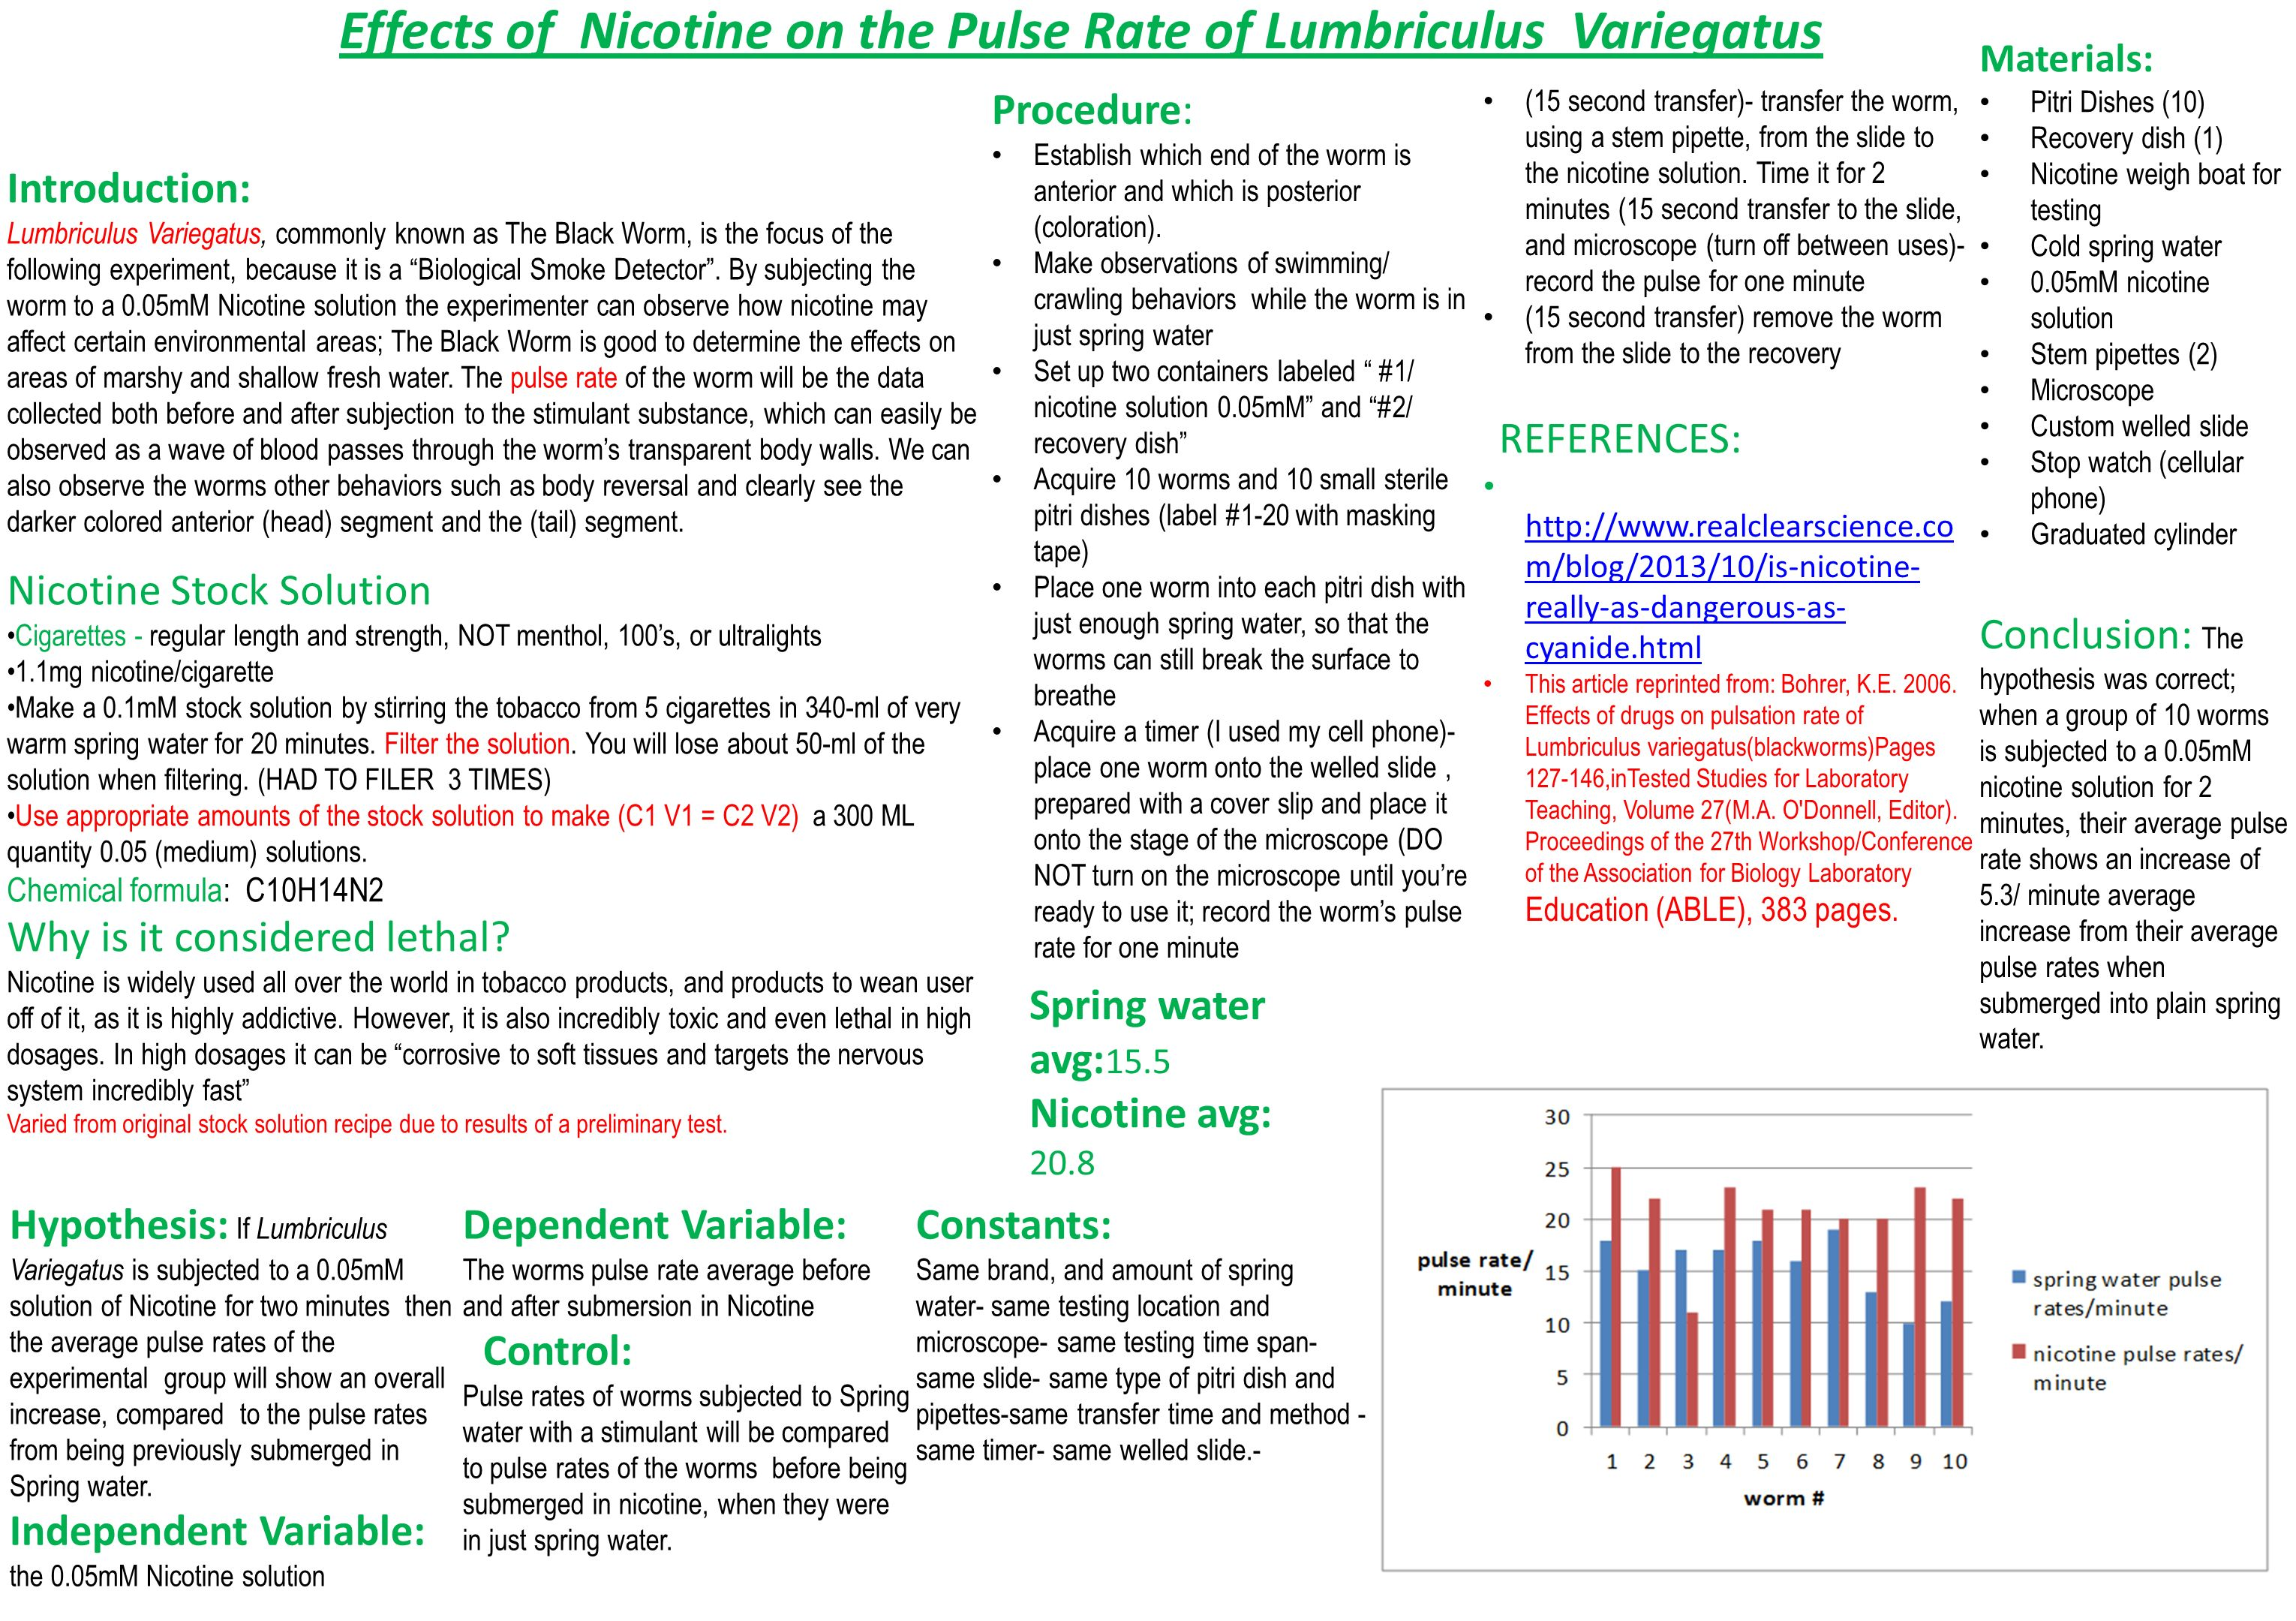 Effects of Nicotine on the Pulse Rate of Lumbriculus